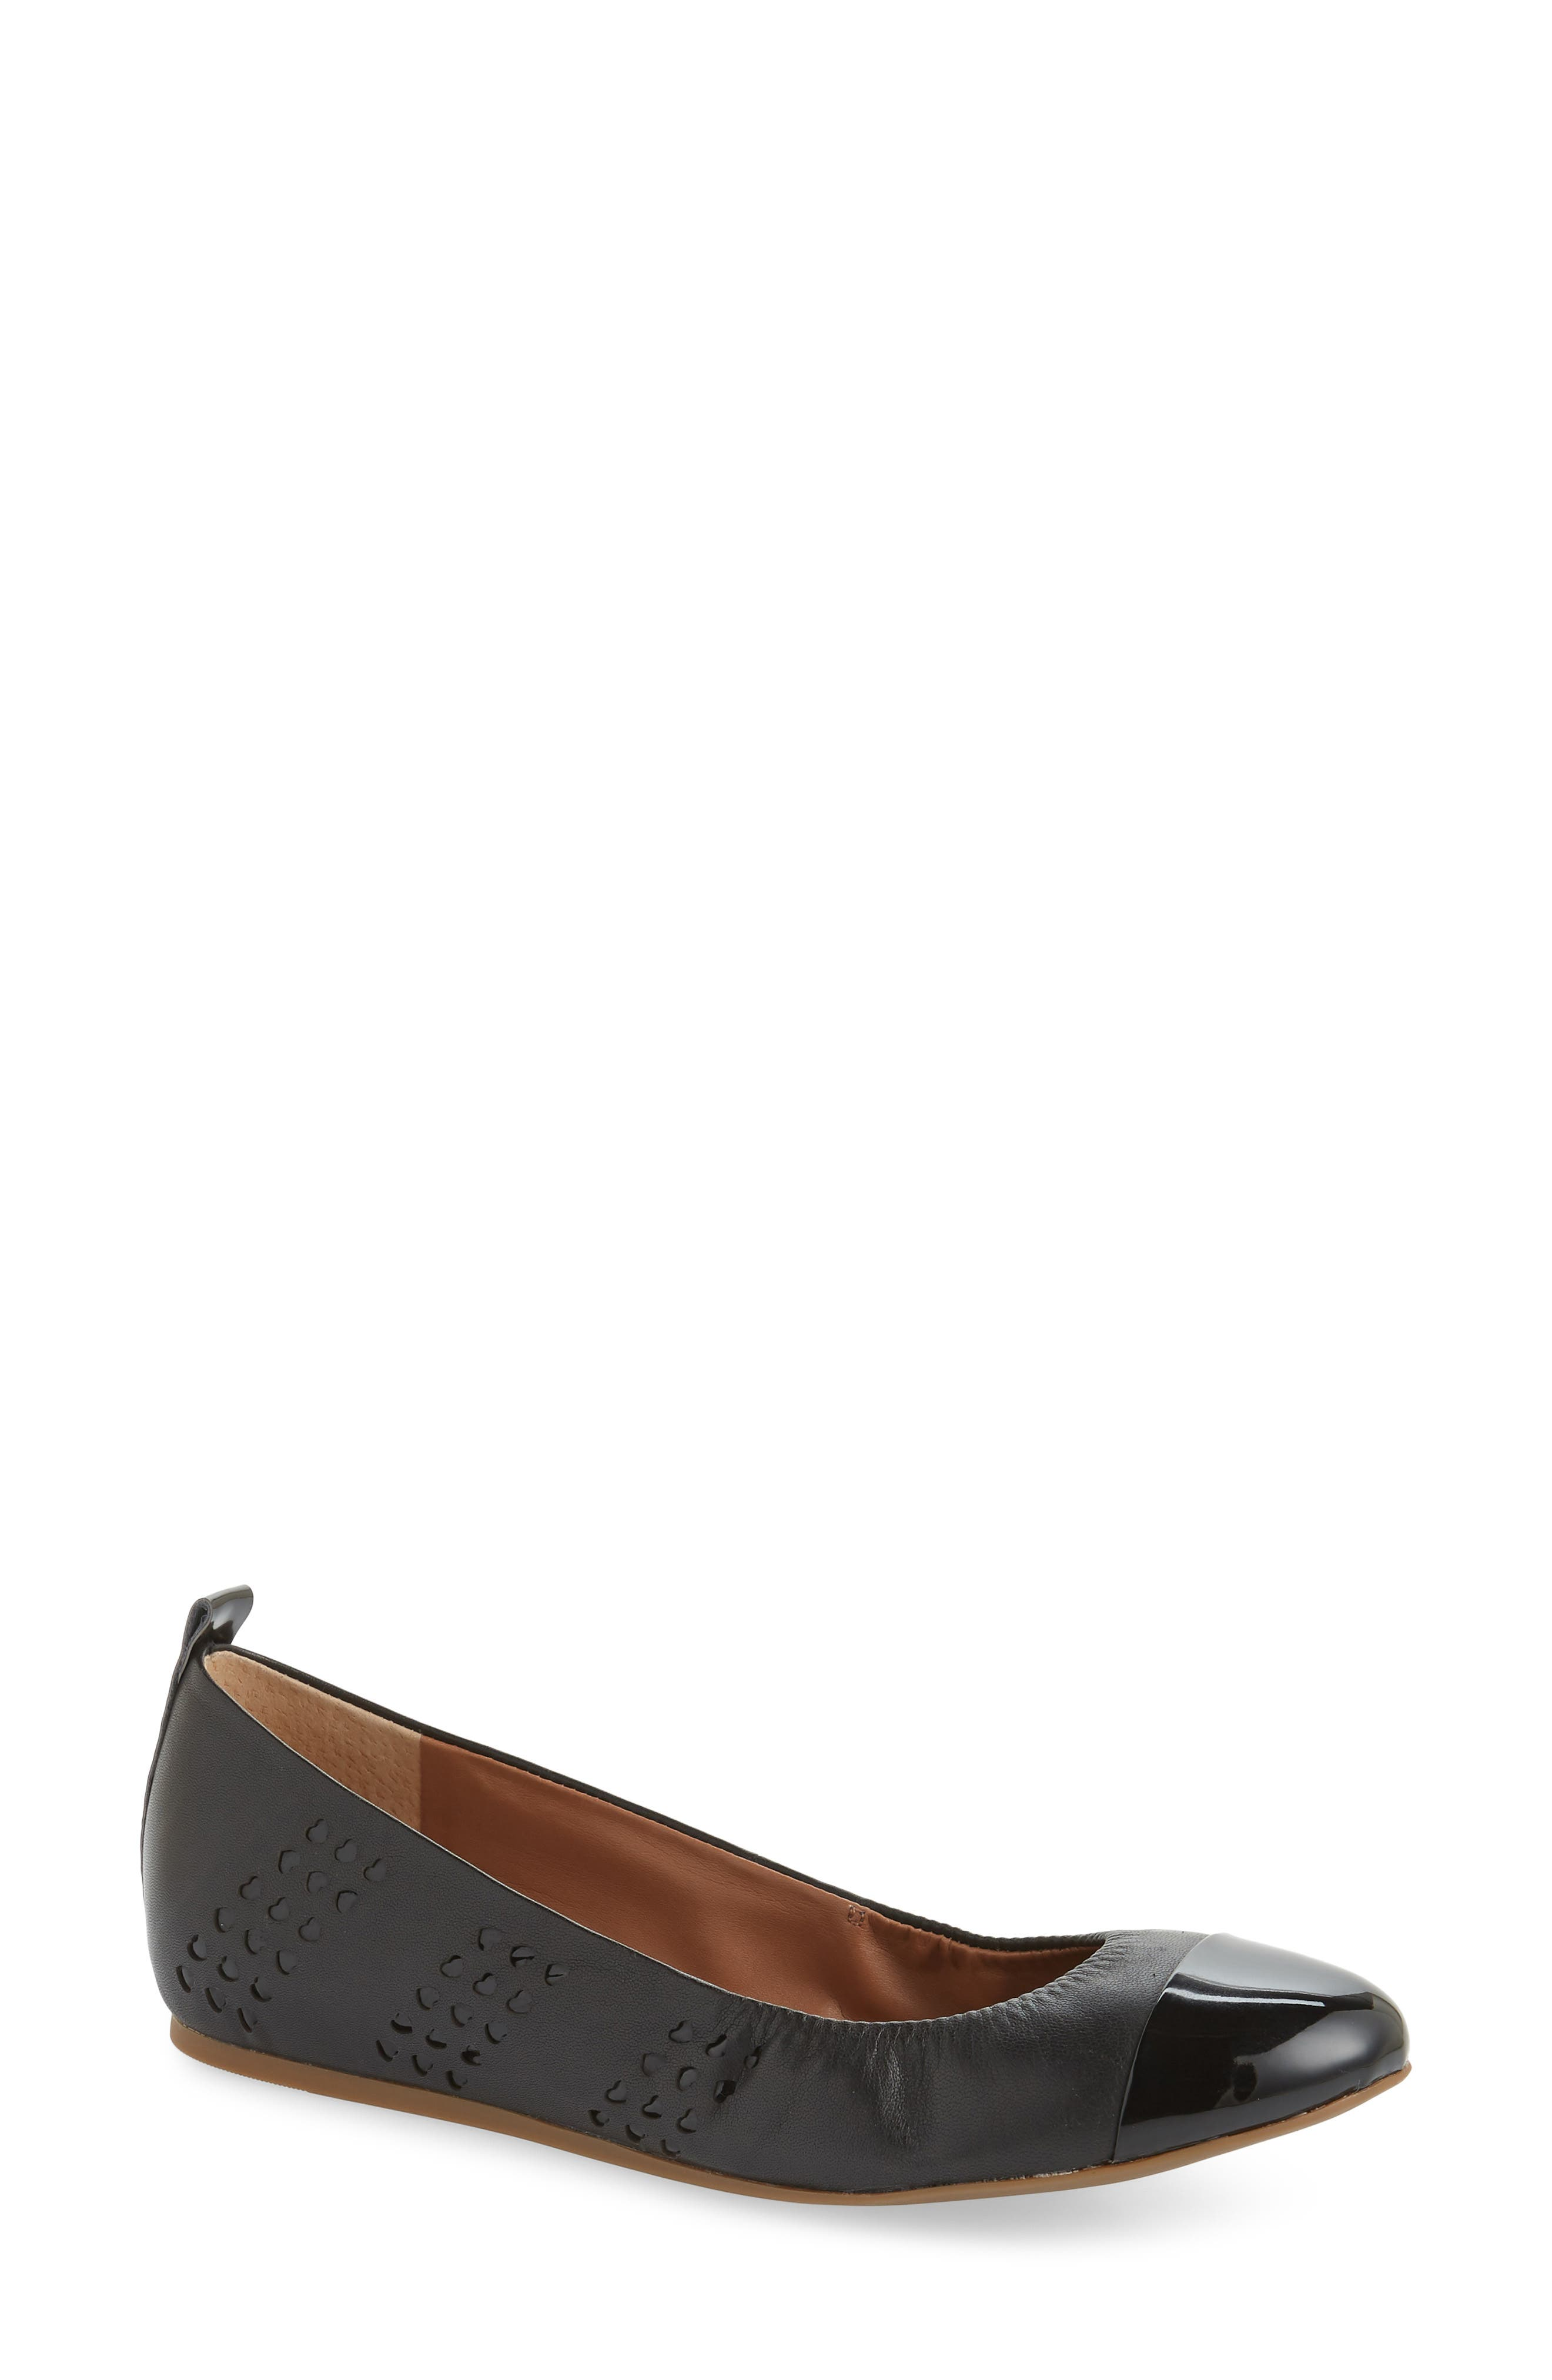 Larra Cap Toe Ballet Flat,                         Main,                         color, 001